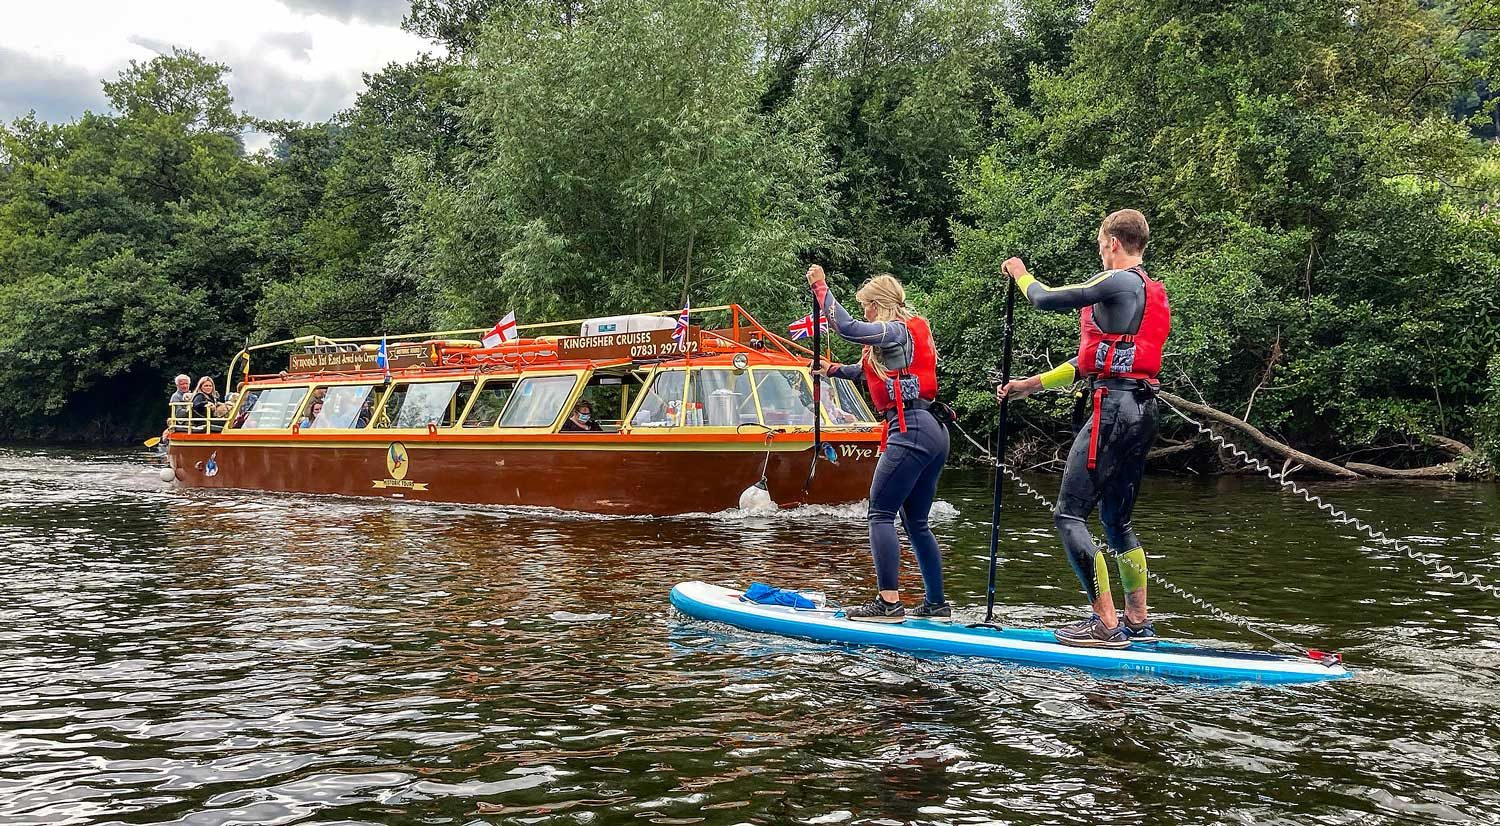 River Wye Paddleboard Adventures